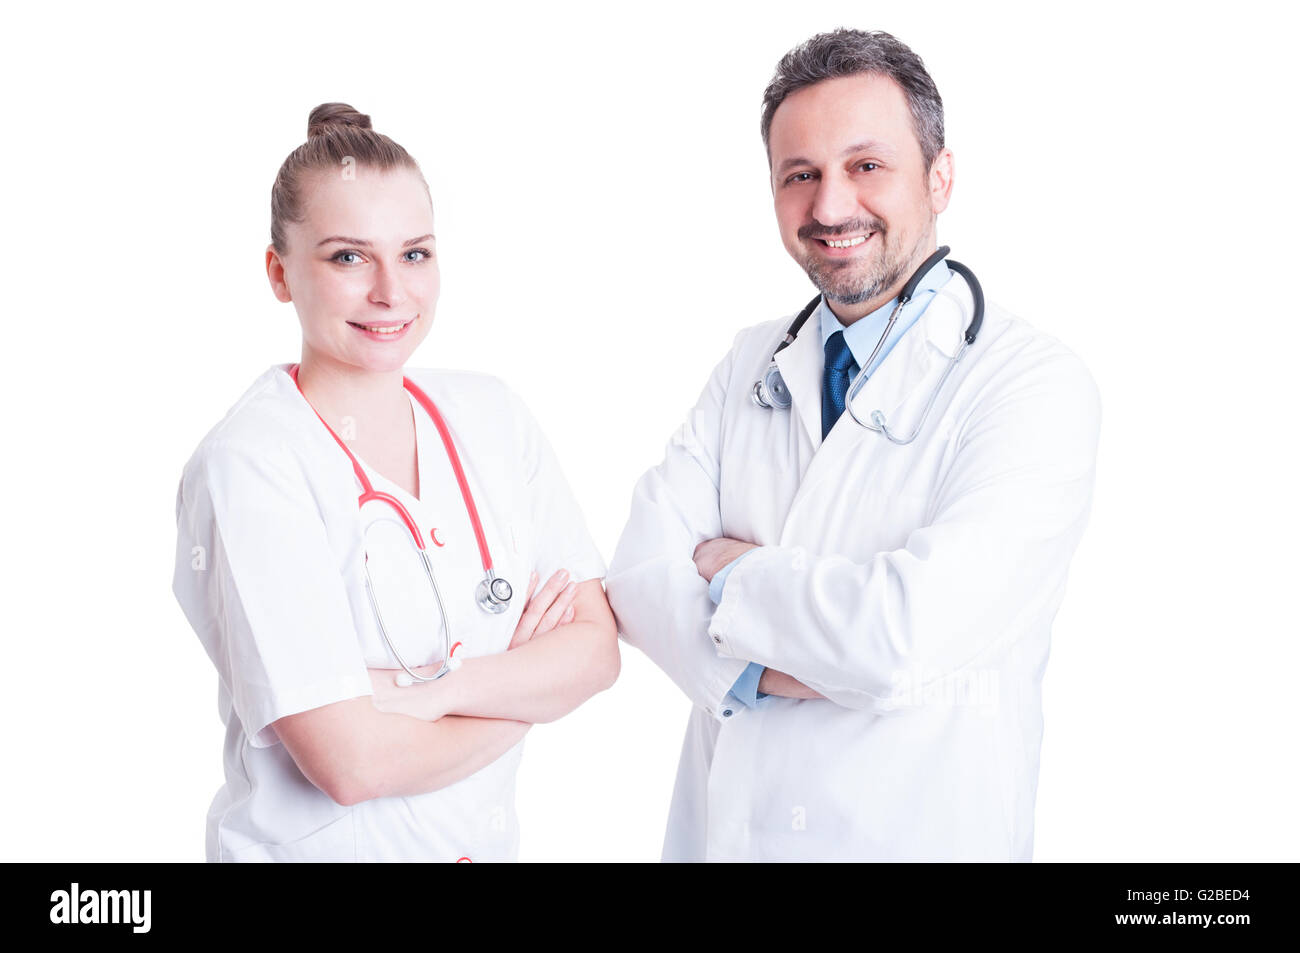 Smiling and confident young doctors in white uniform  working together as partnership and teamwork concept - Stock Image